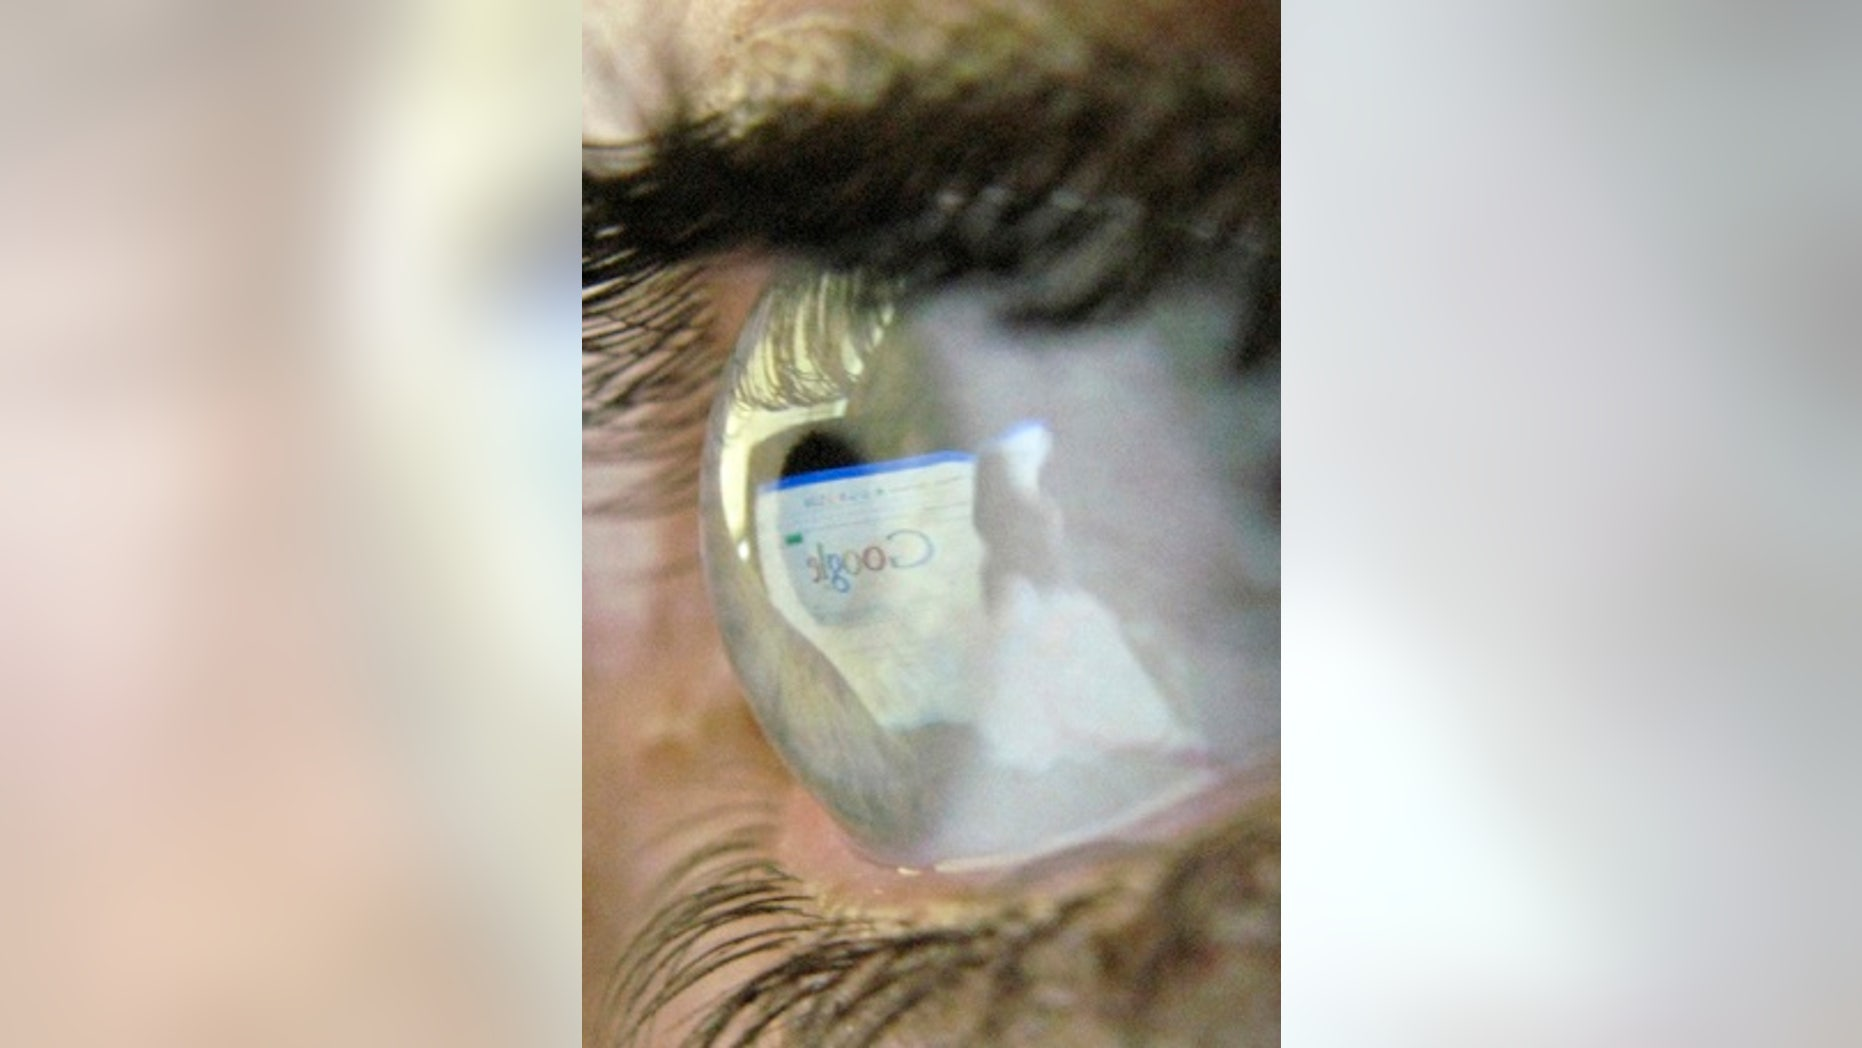 File photo - A Google search page is reflected in the eye of a computer user in Leicester, central England, July 20, 2007.